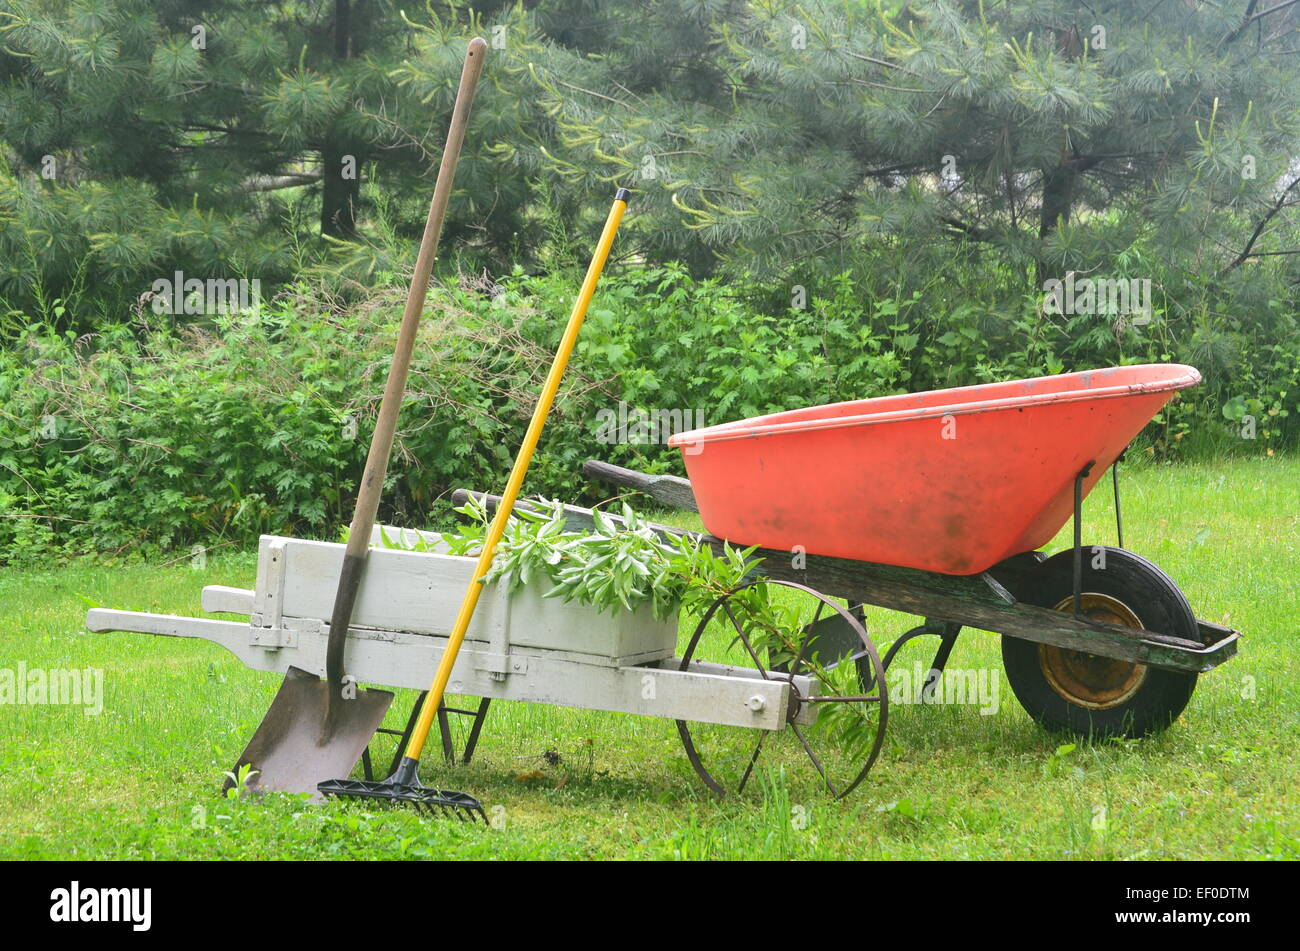 Gardening tools wheelbarrows - Stock Image